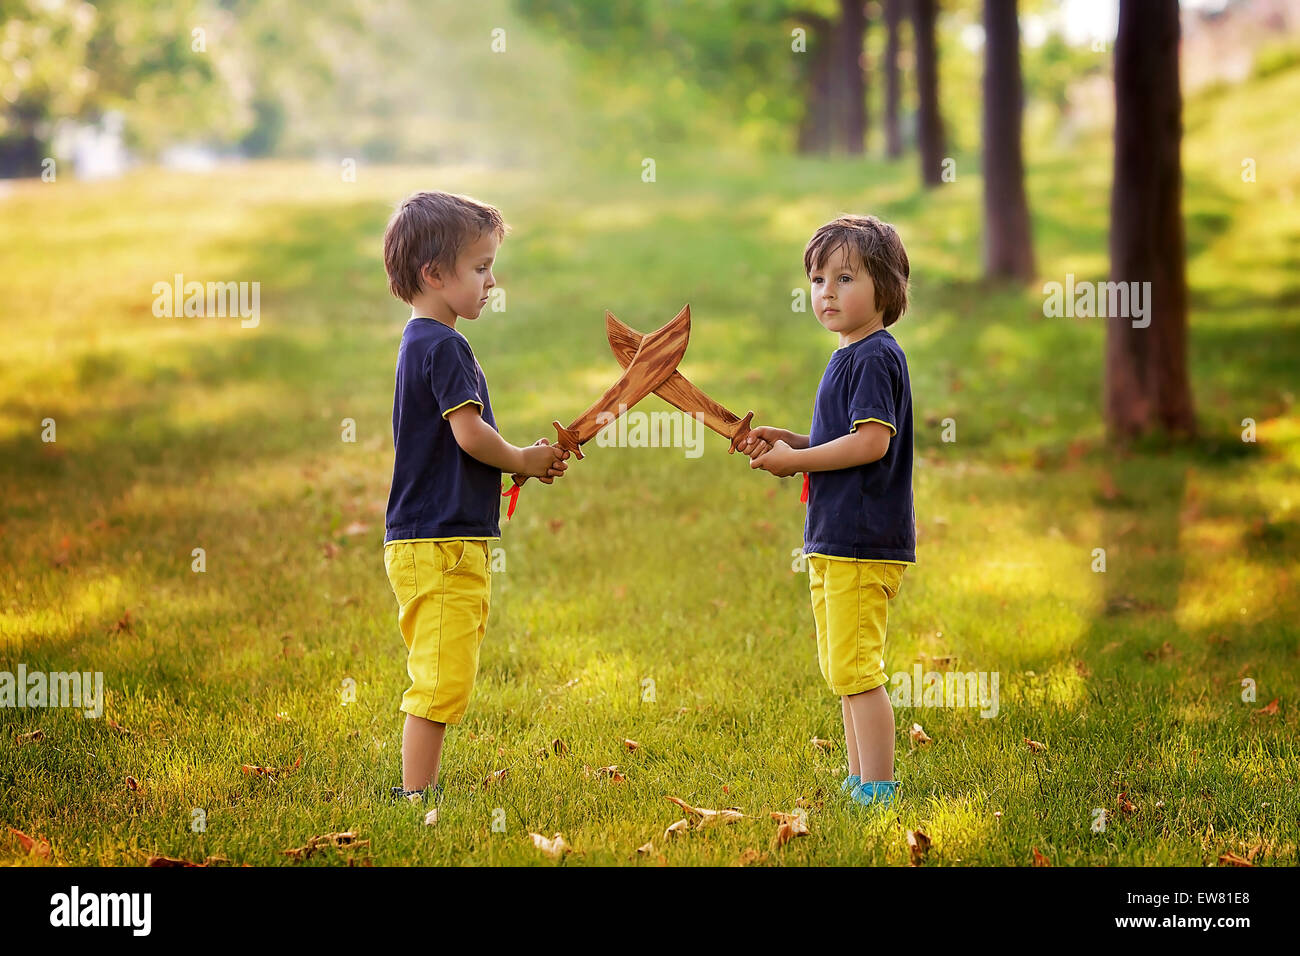 Two Little Boys Holding Swords Glaring With A Mad Face At Each Other Fighting Outdoors In The Park